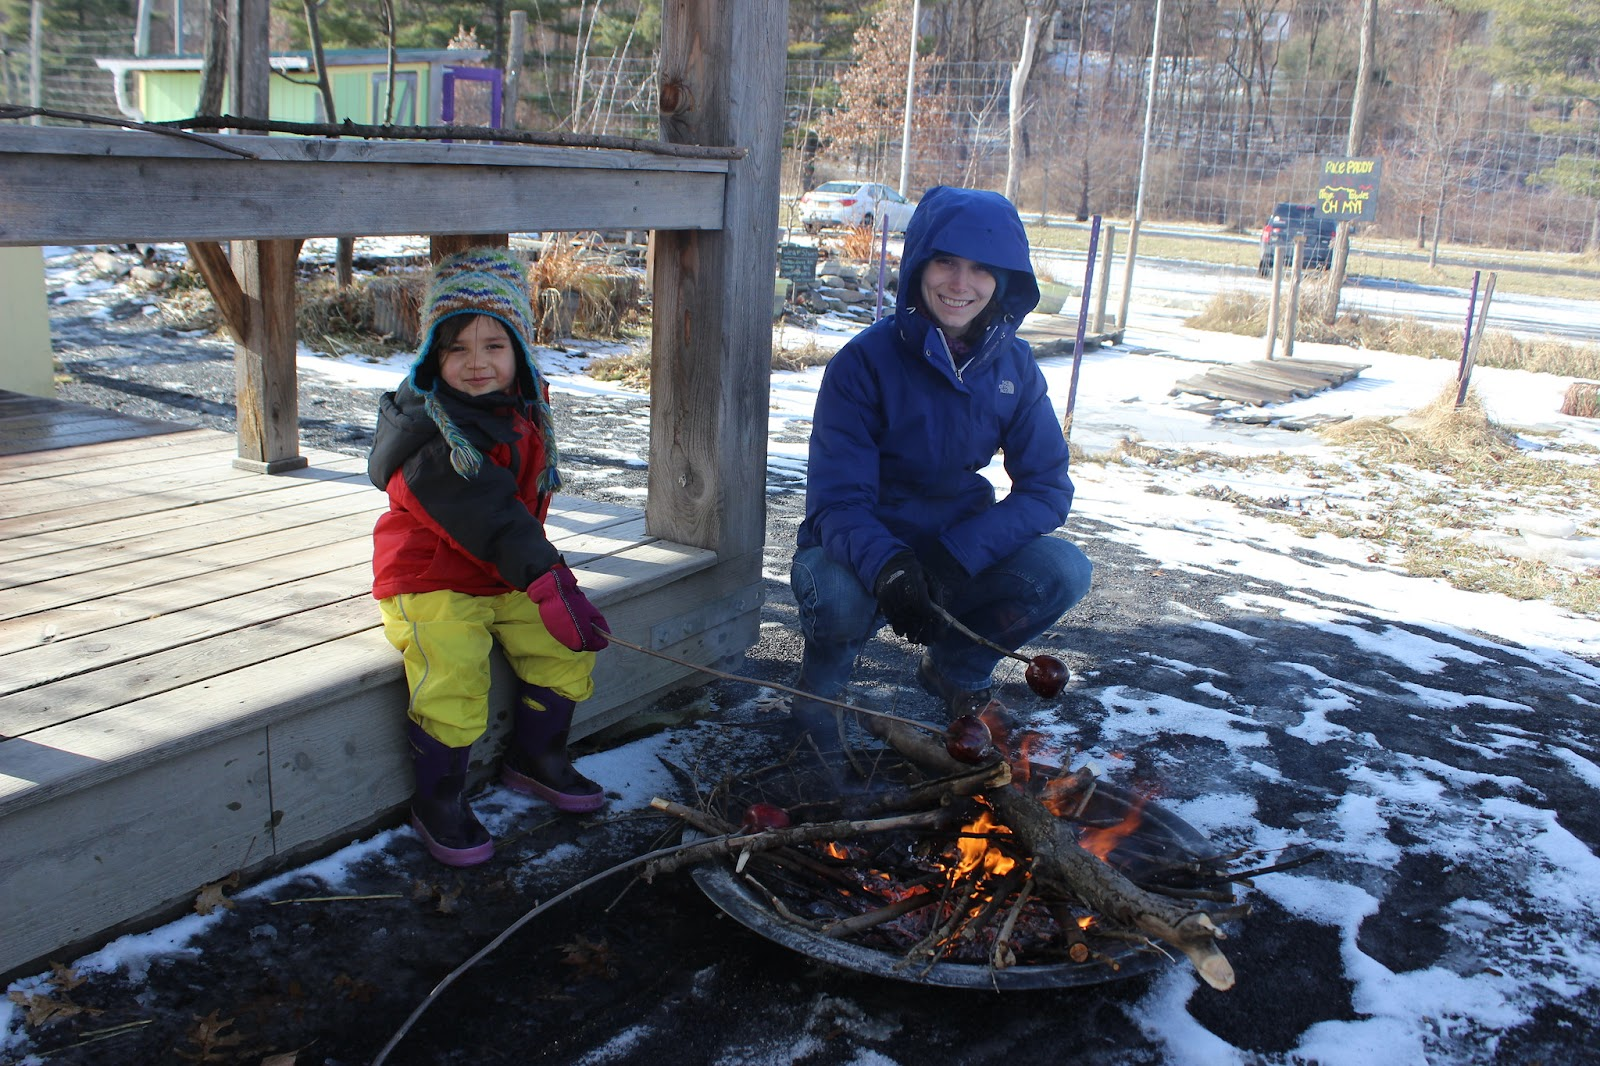 A child accompanied beside an adult roasts an apple over a small fire pit.